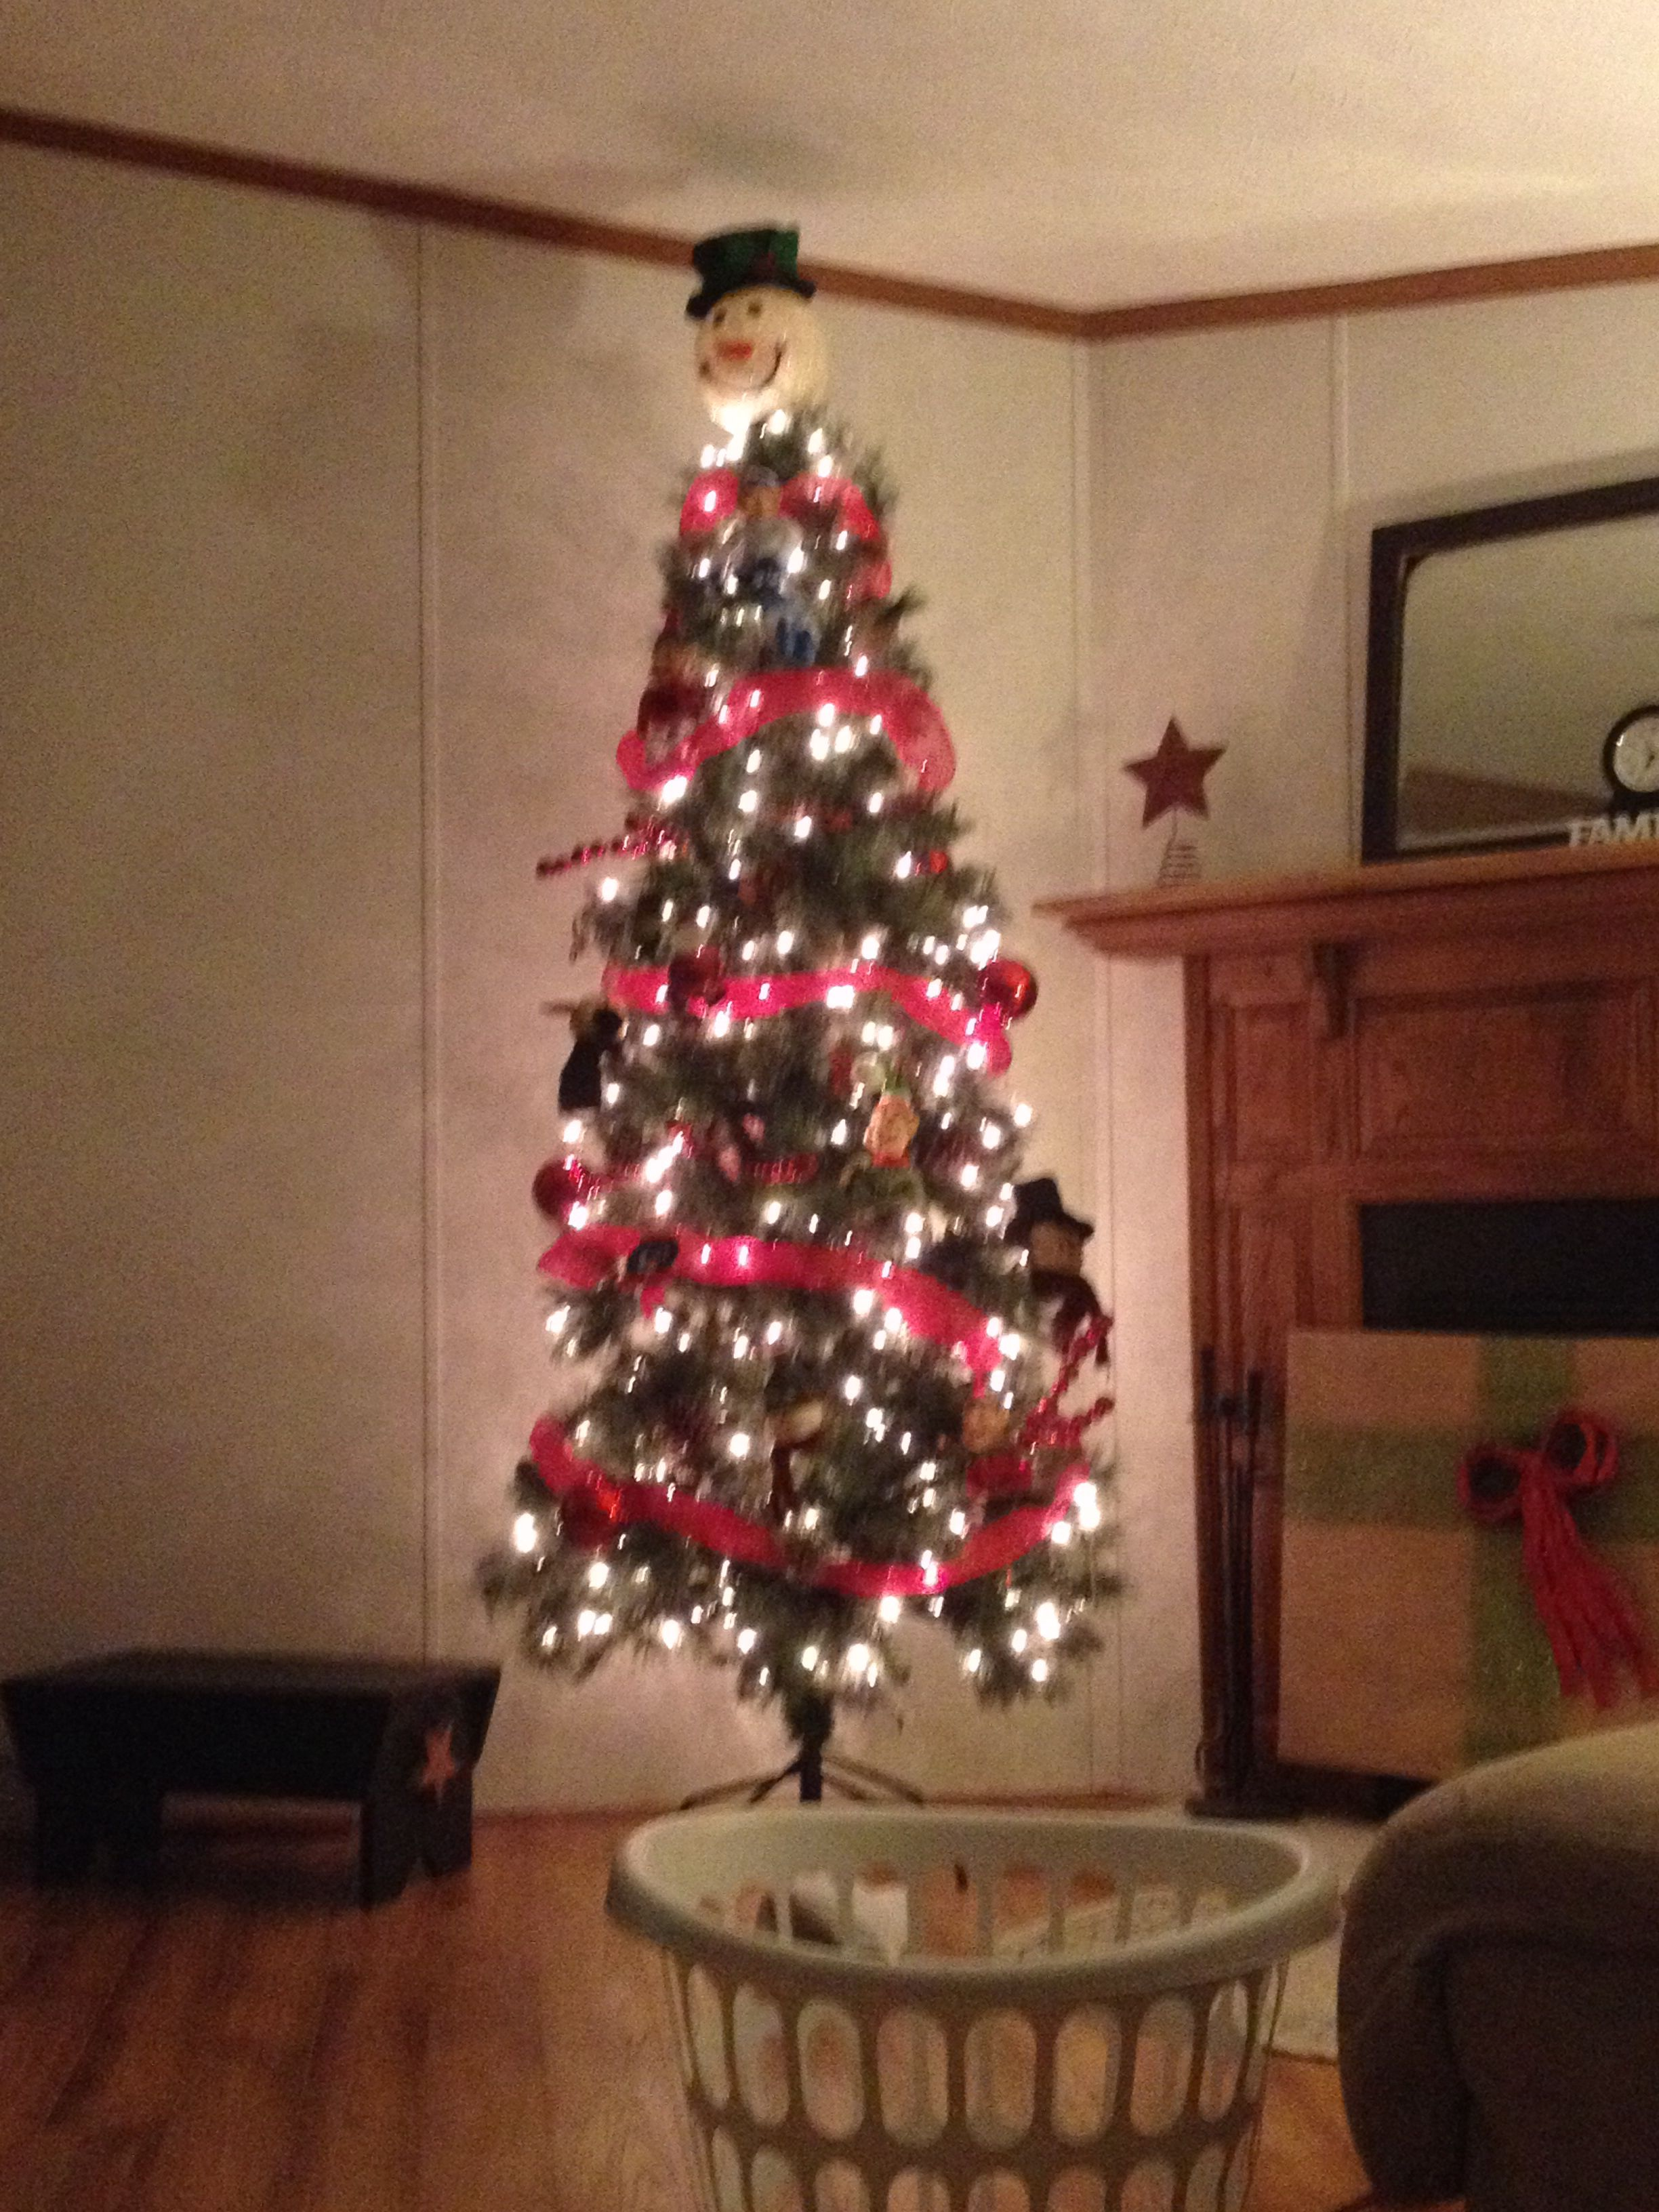 can you guess what the color theme is color themes christmas trees xmas trees - Christmas Tree Color Themes